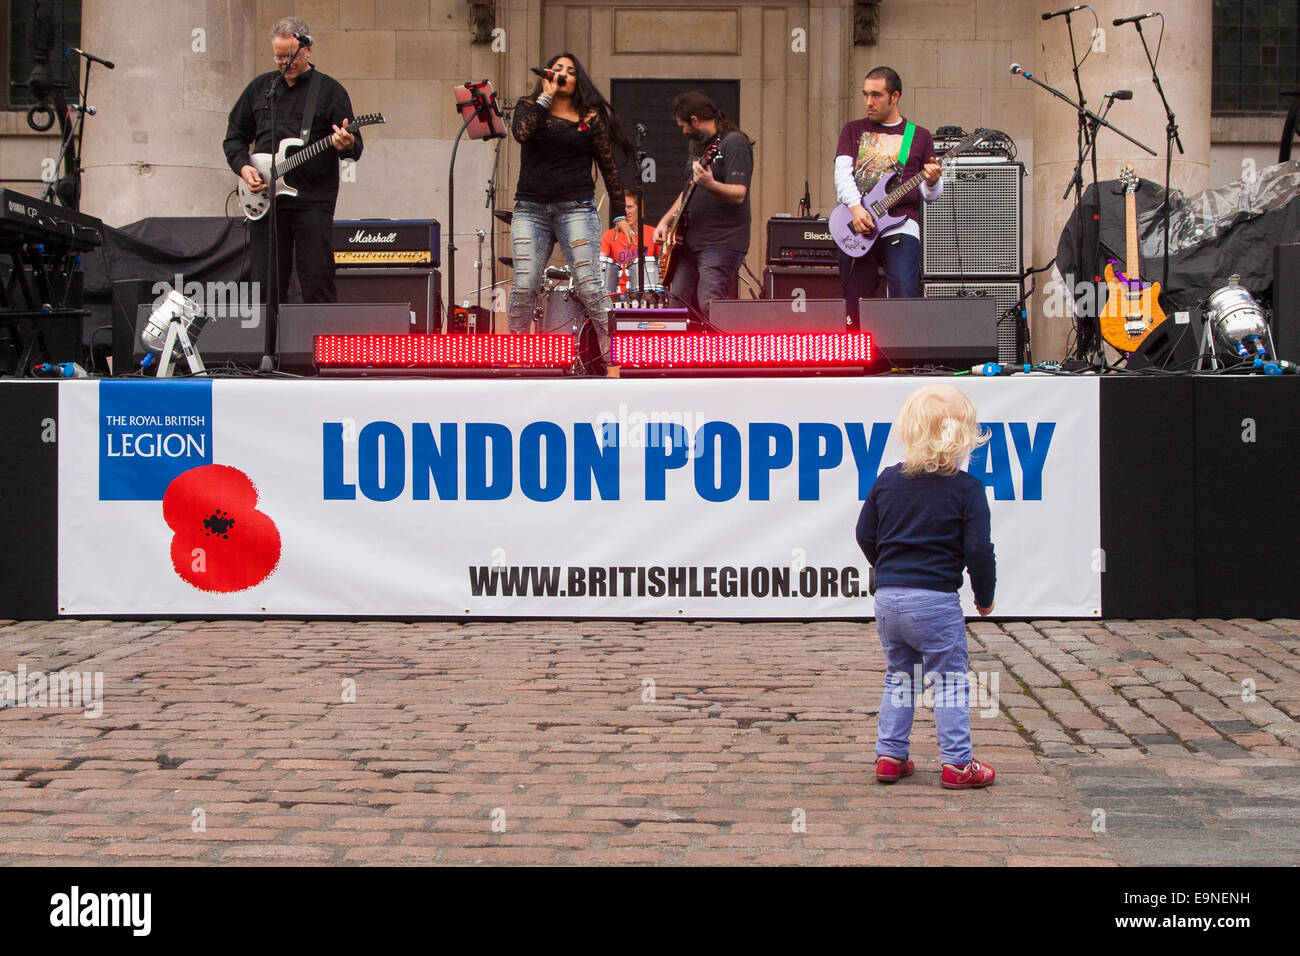 Covent Garden, London, UK. 30th october, 2014. They Royal British Legion's Poppy Day in London centred around - Stock Image